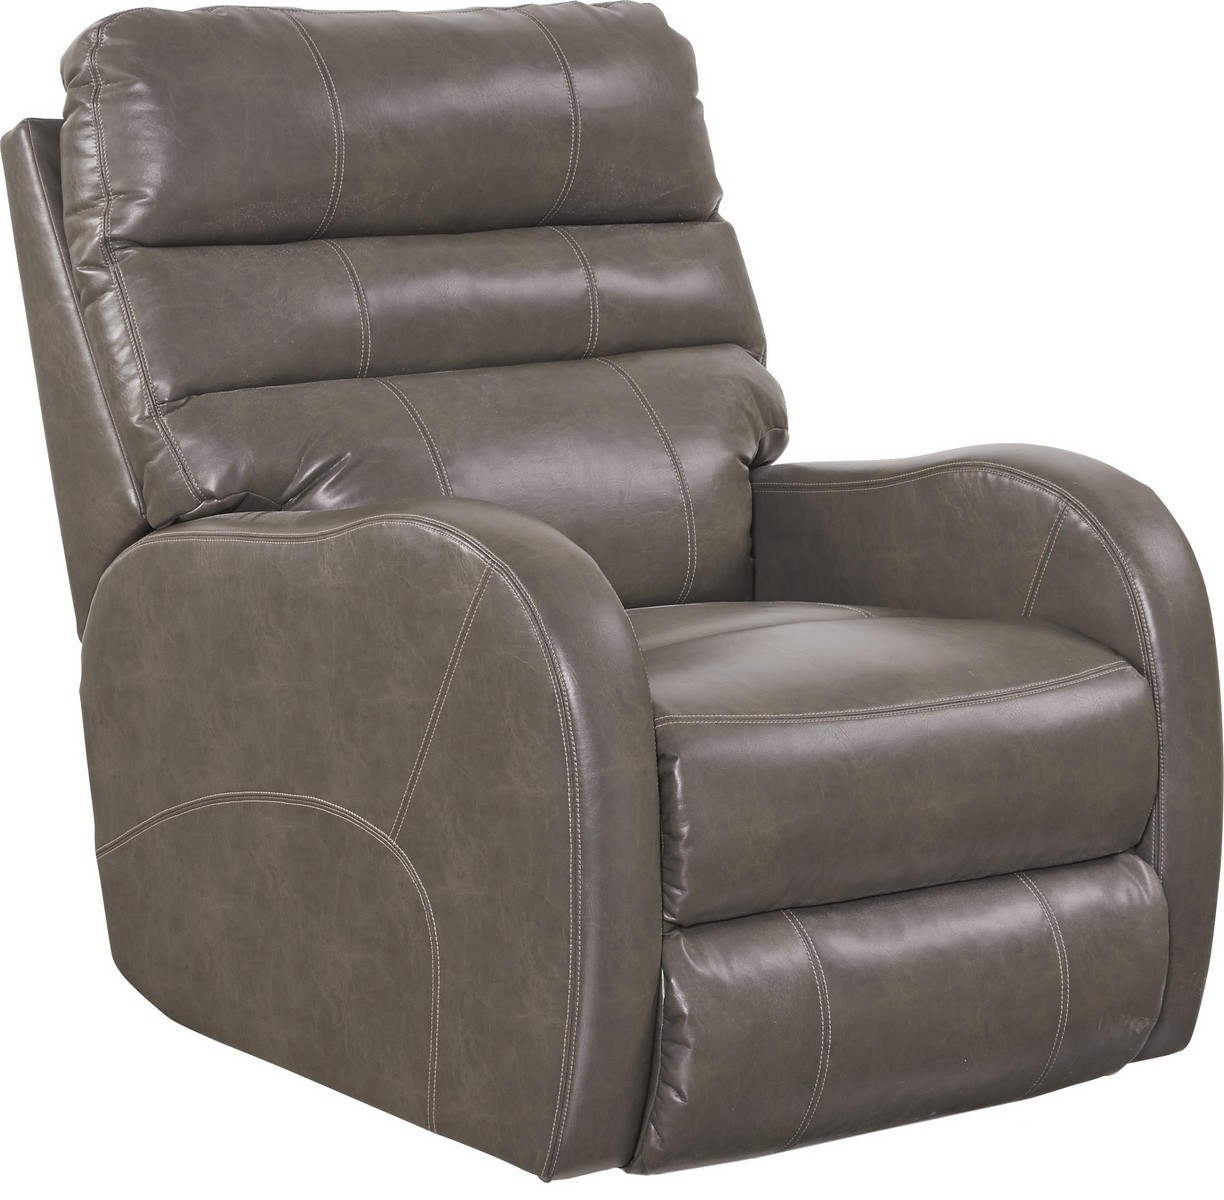 Catnapper Searcy Power Wall Hugger Recliner With Usb Port